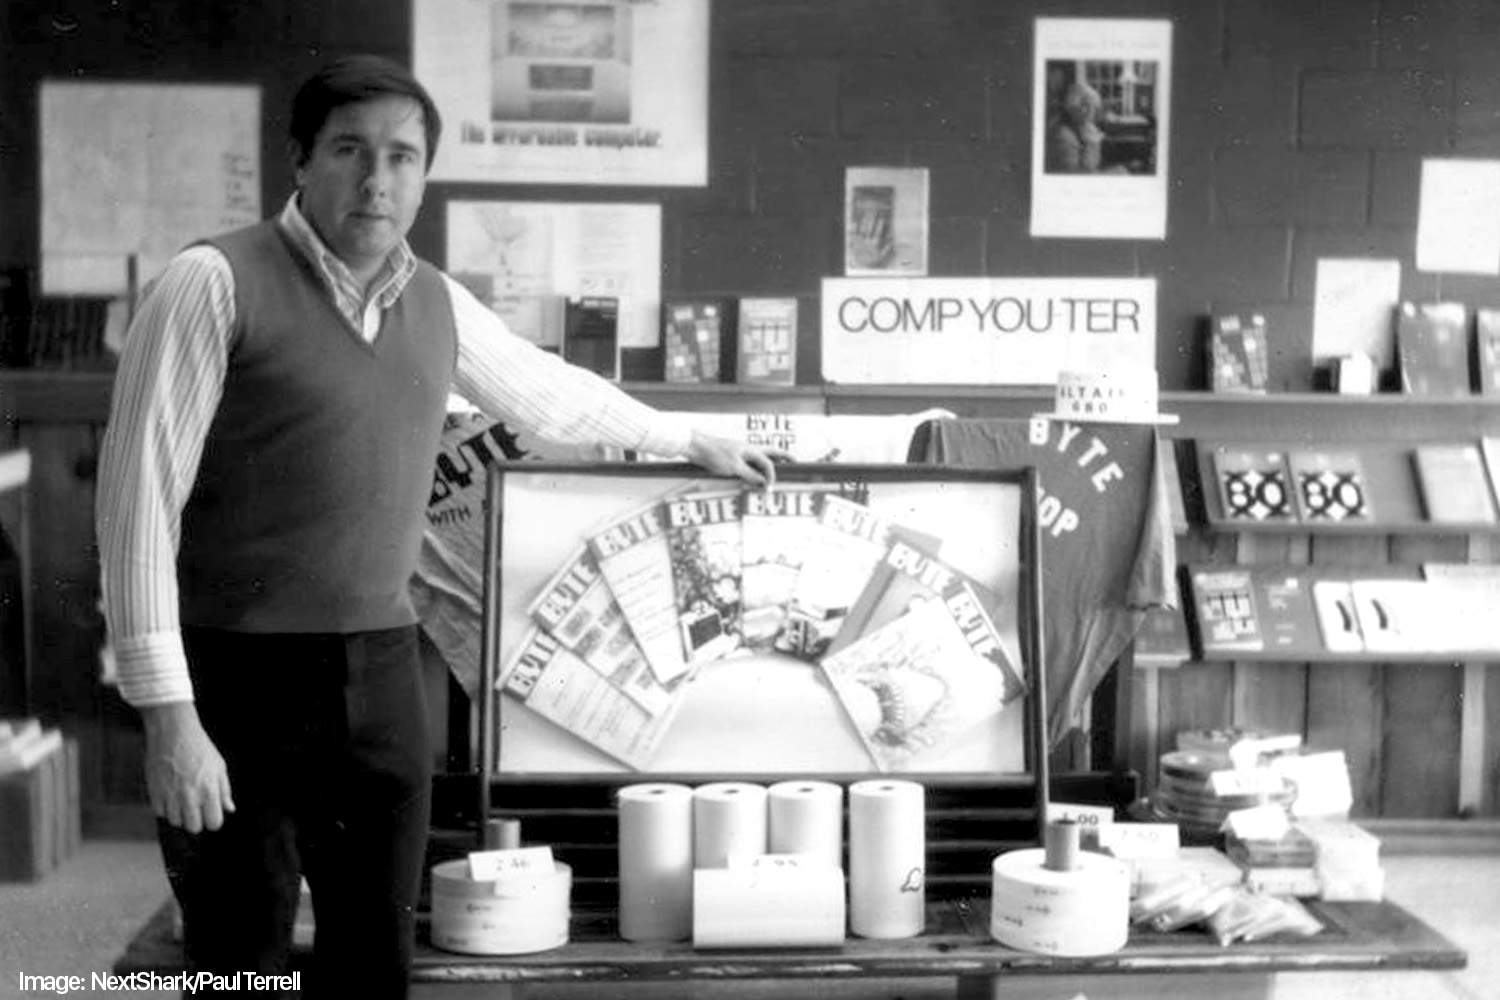 Paul Terrell founded The Byte Shop on his birthday.